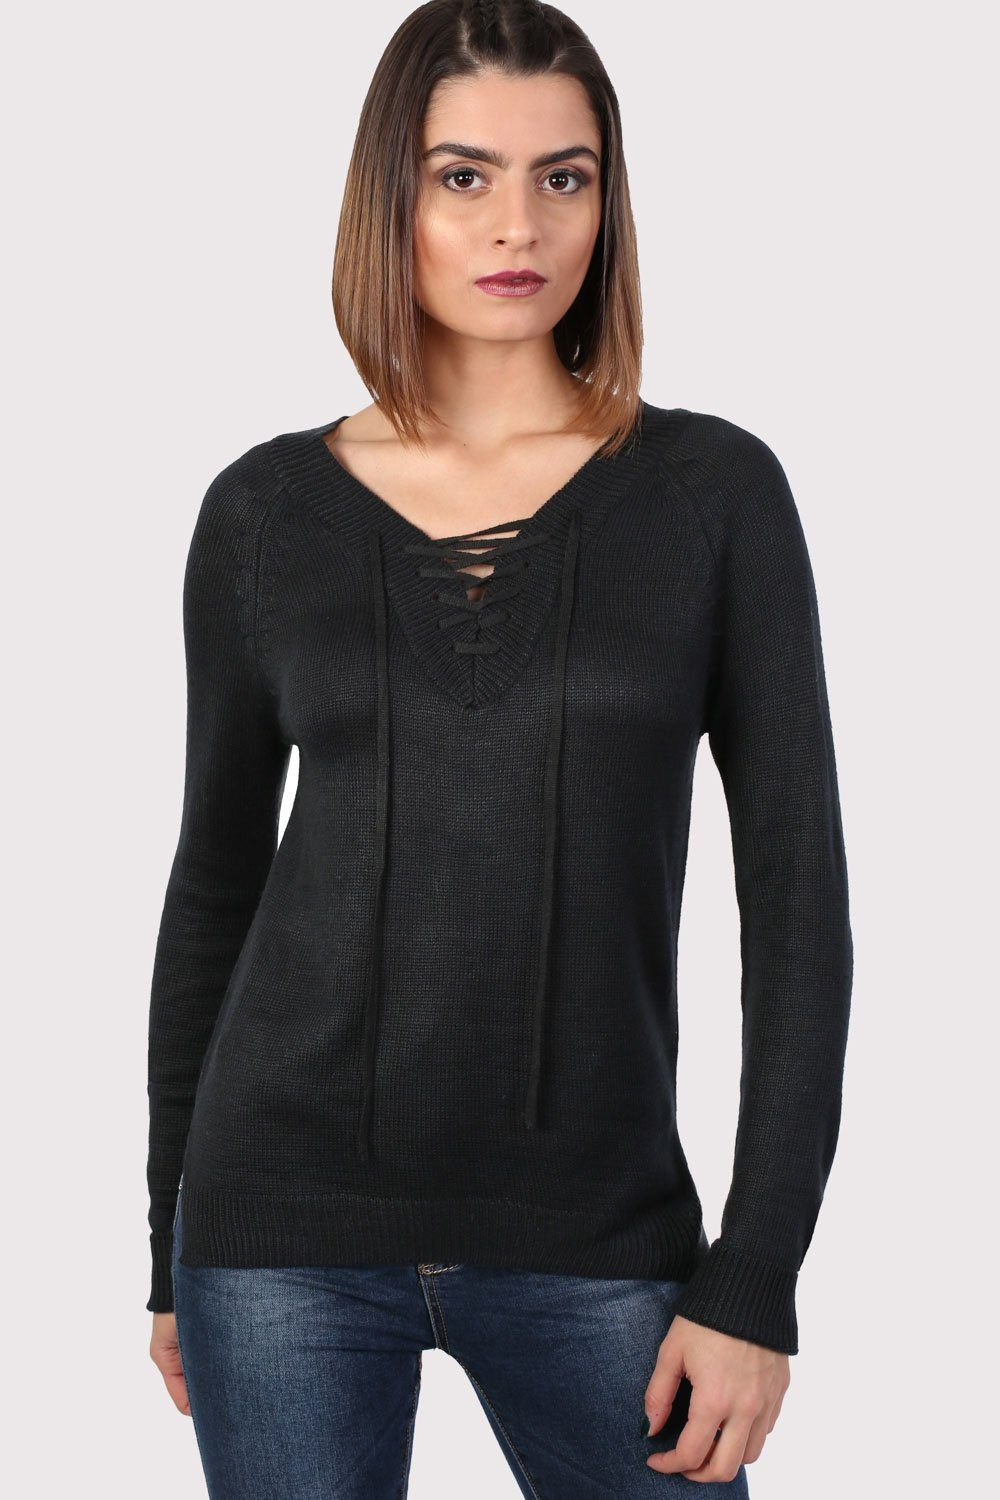 Fine Knit Lace Up Front V Neck Jumper in Black 1